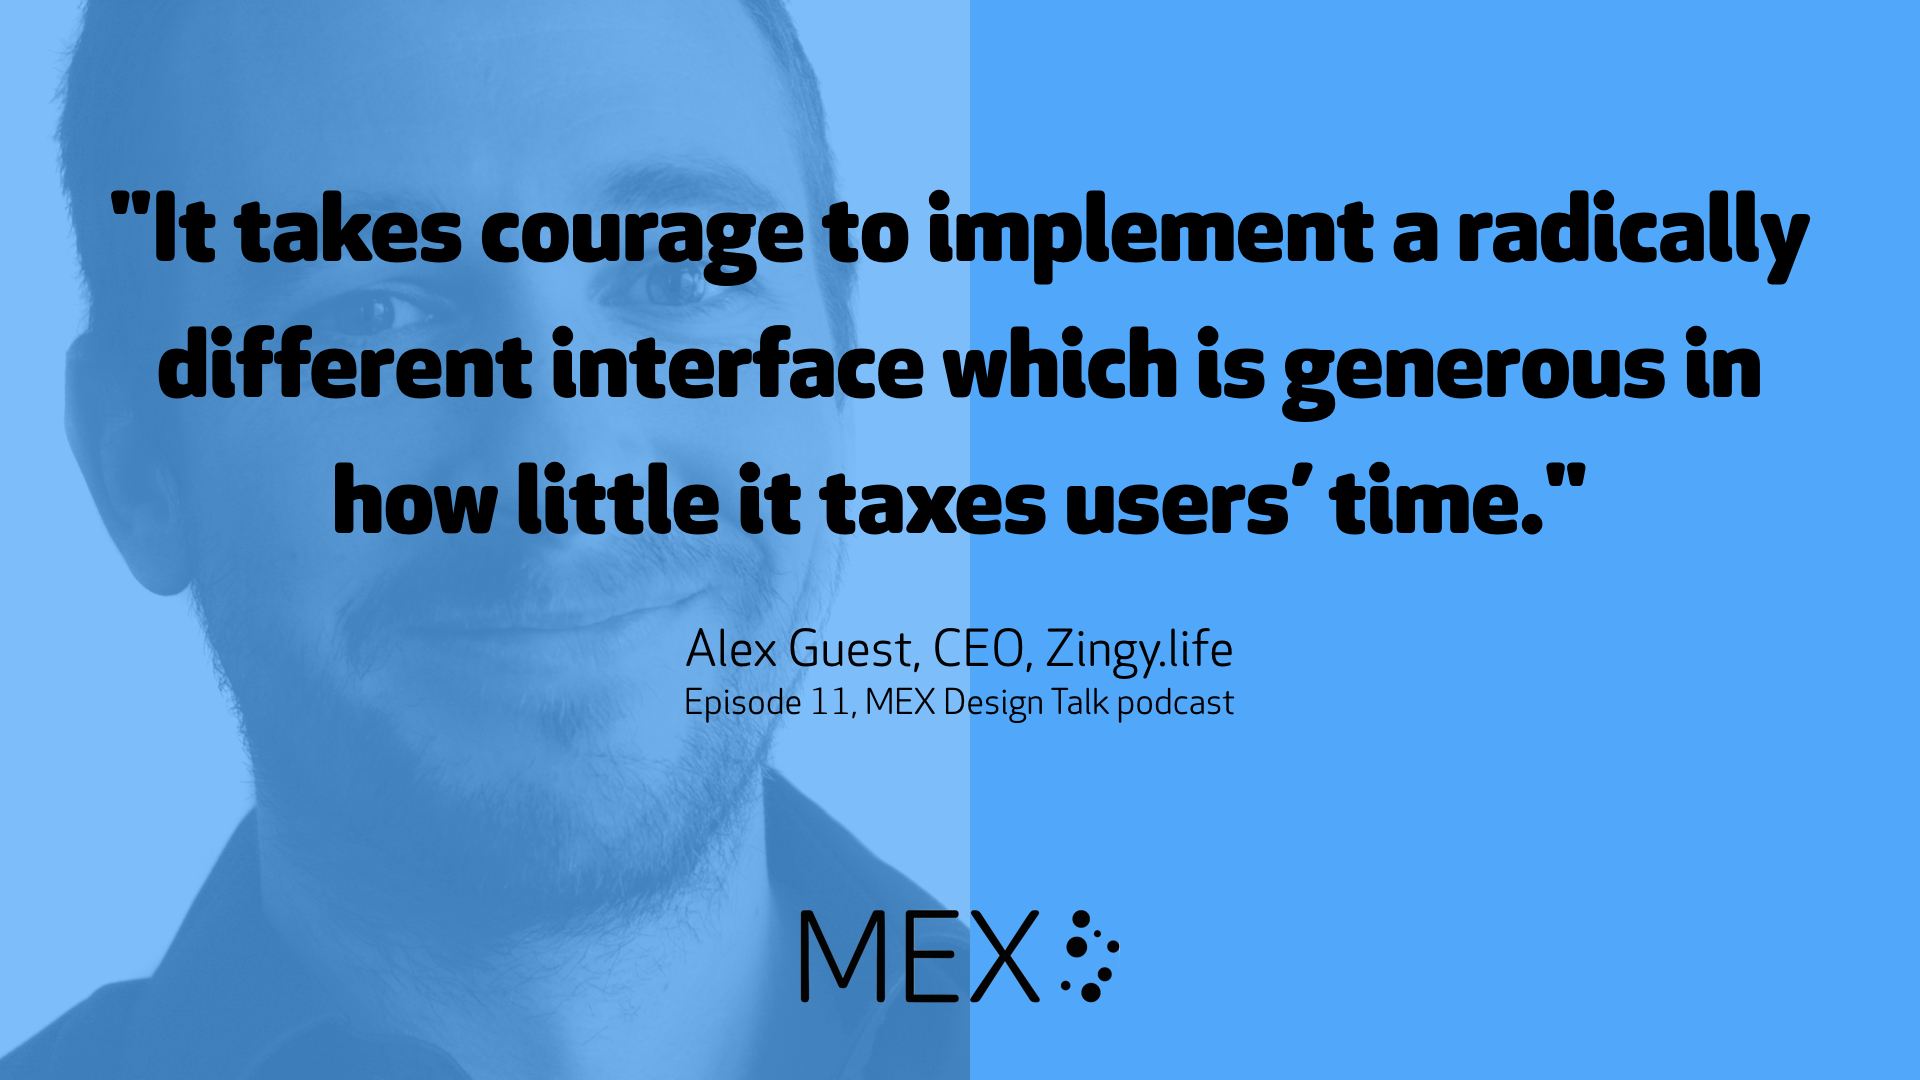 """It takes courage to implement a radically different interface which is generous in how little it taxes users' time."" -- Alex Guest, CEO, Zingy.life on Episode 11, MEX Design Talk podcast"